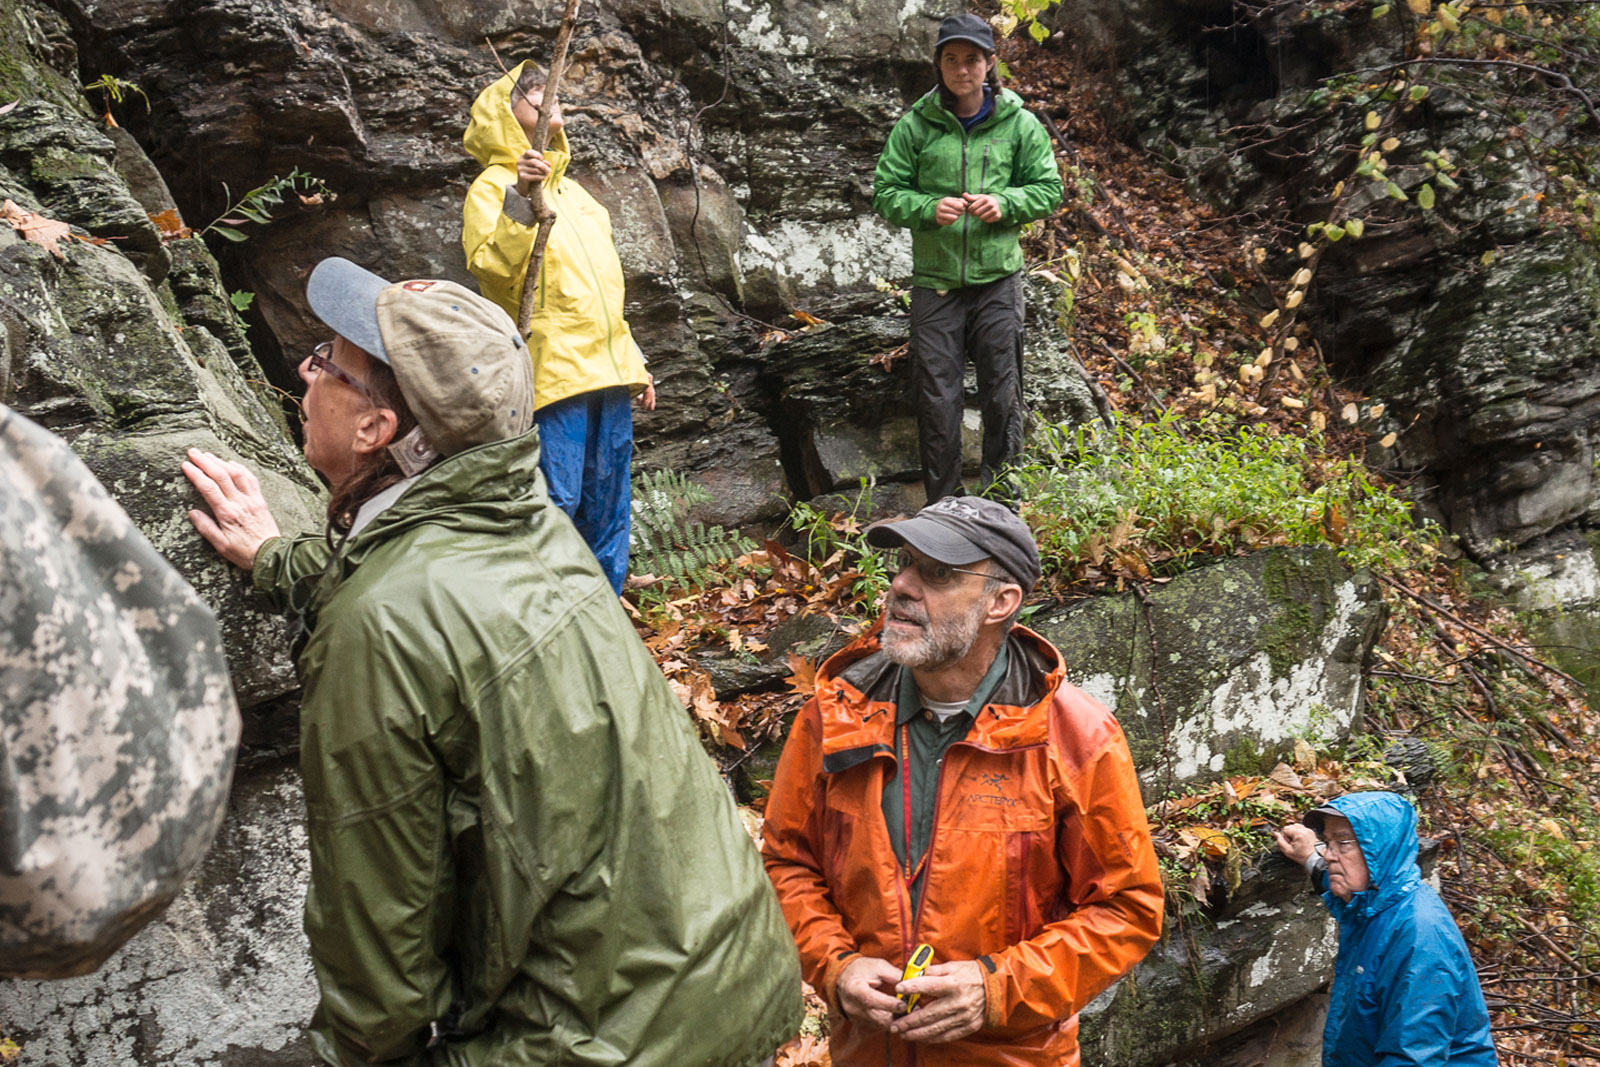 Geology workshop participants study a rock formation in the Smoky Mountains